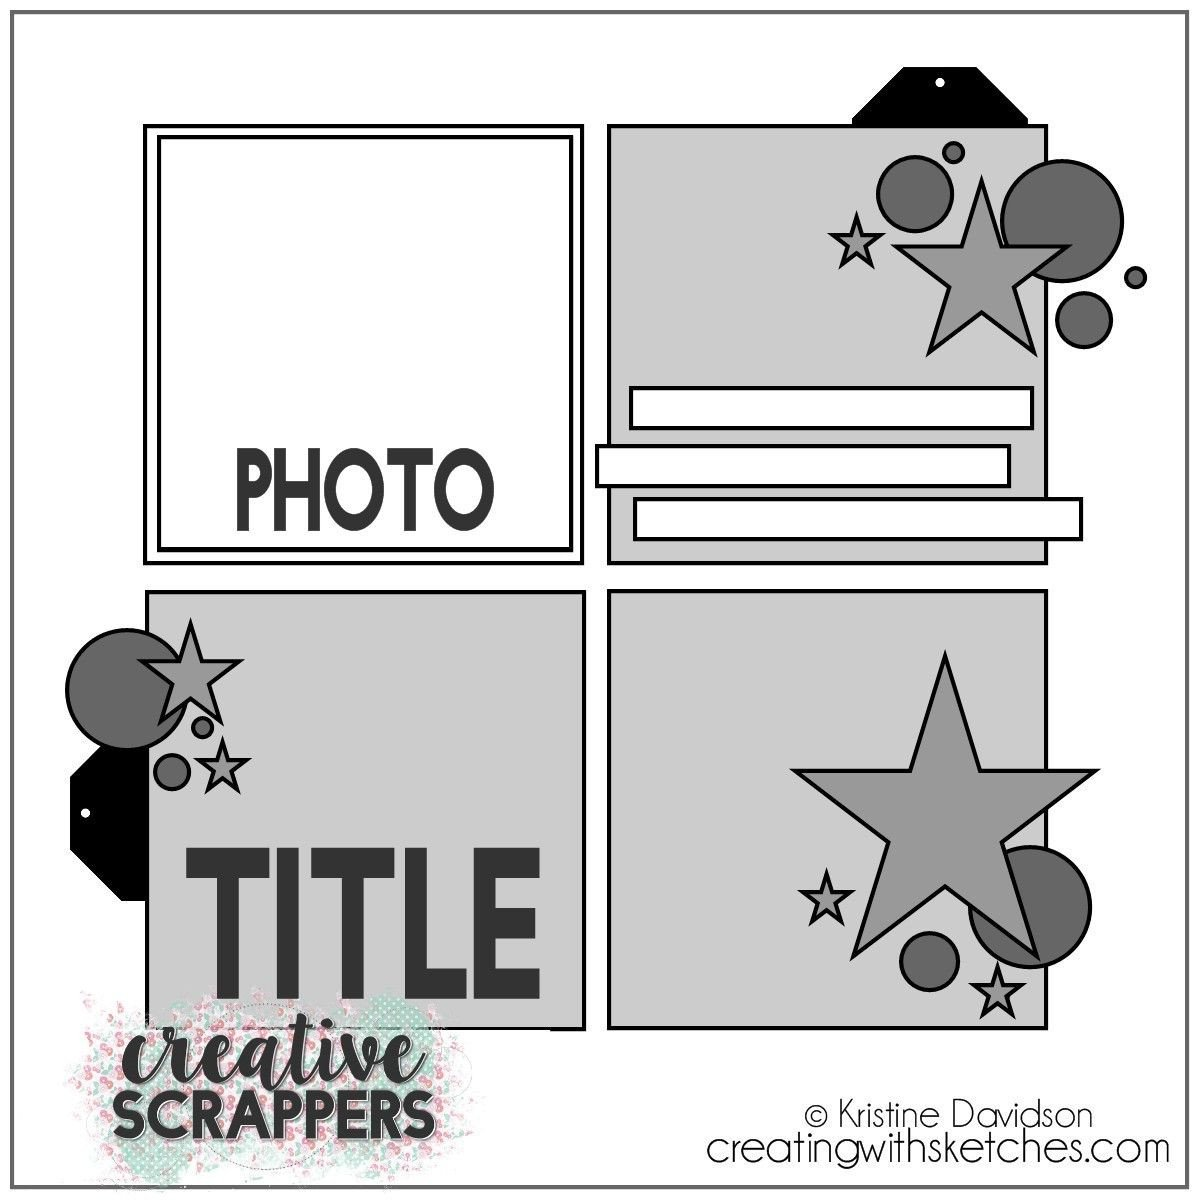 12x12 Bedroom Furniture Layout Lovely Creative Scrappers Happy National Scrapbook Day